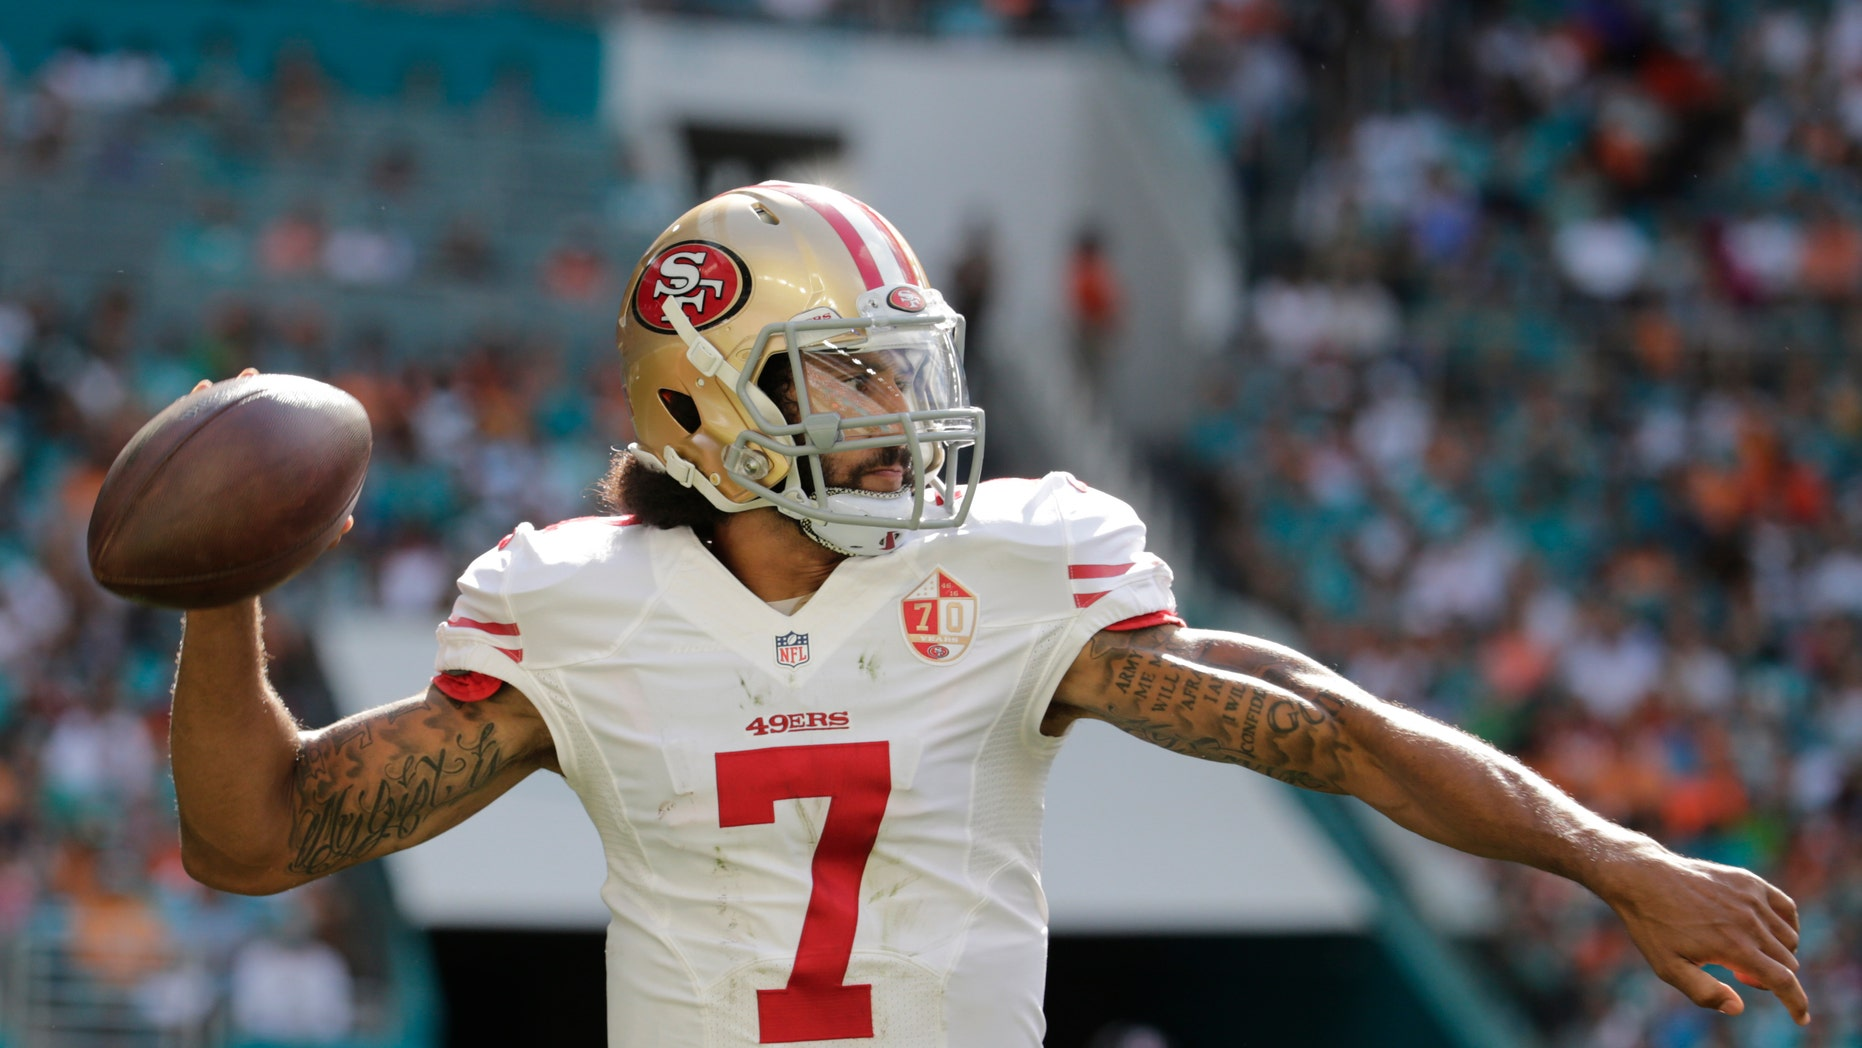 San Francisco 49ers quarterback Colin Kaepernick looks to pass during a game against the Miami Dolphins.